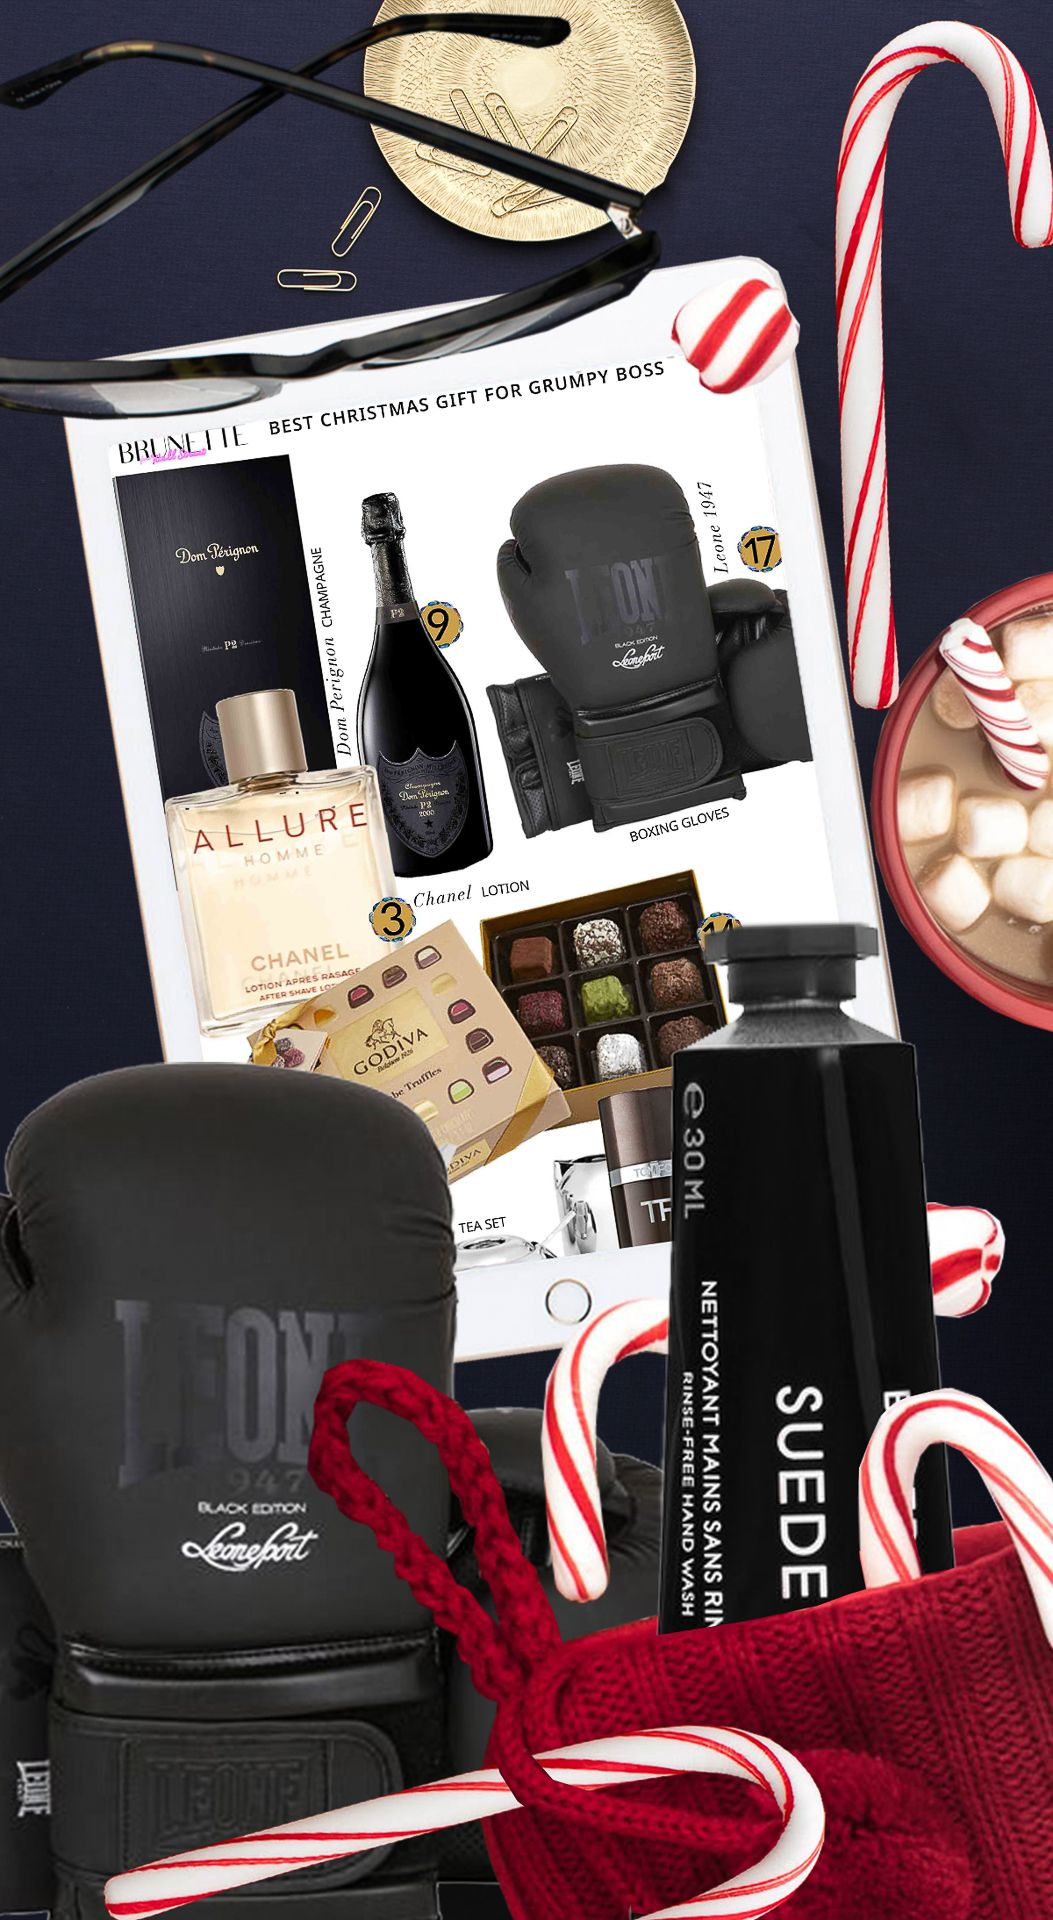 20 best christmas gifts for grumpy boss from